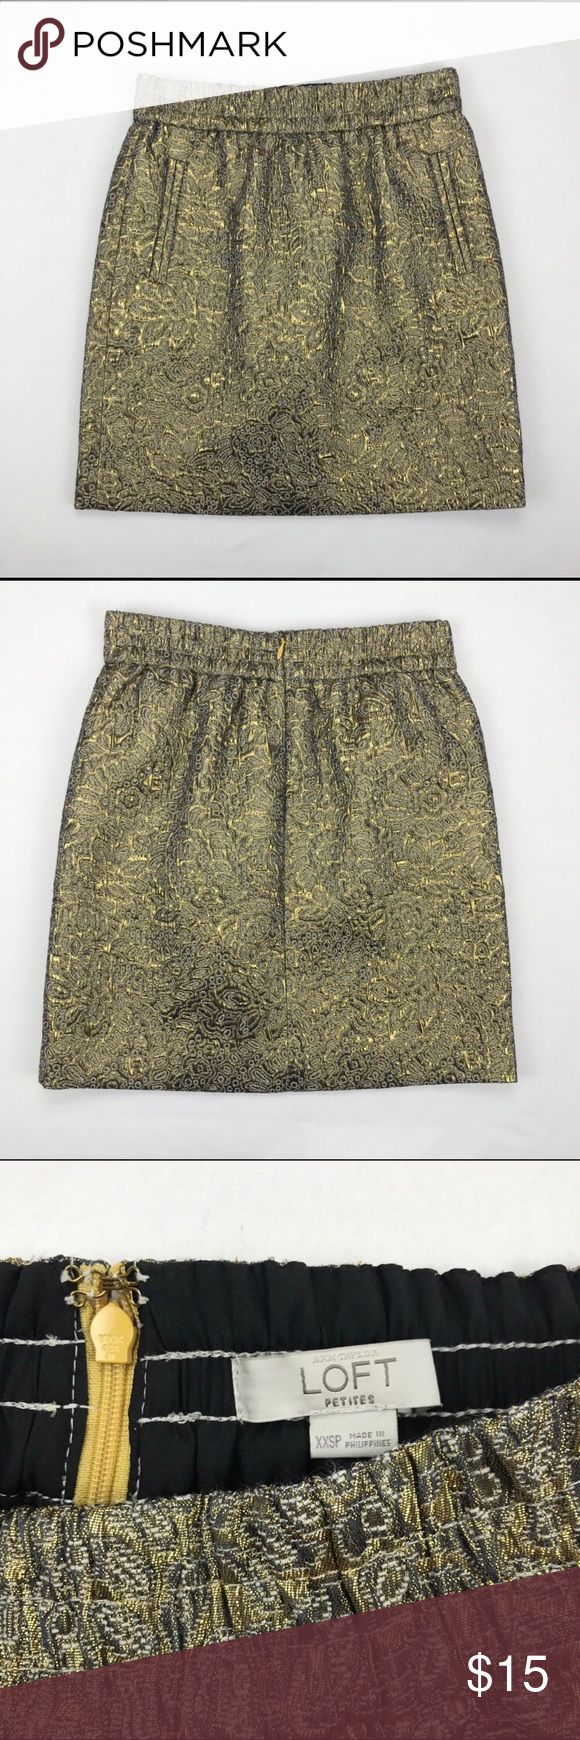 Loft gold skirt Beautiful Loft textured skirt in gold. Size XXS. Excellent condition.   W- 24-25 inches L- 17 inches LOFT Skirts